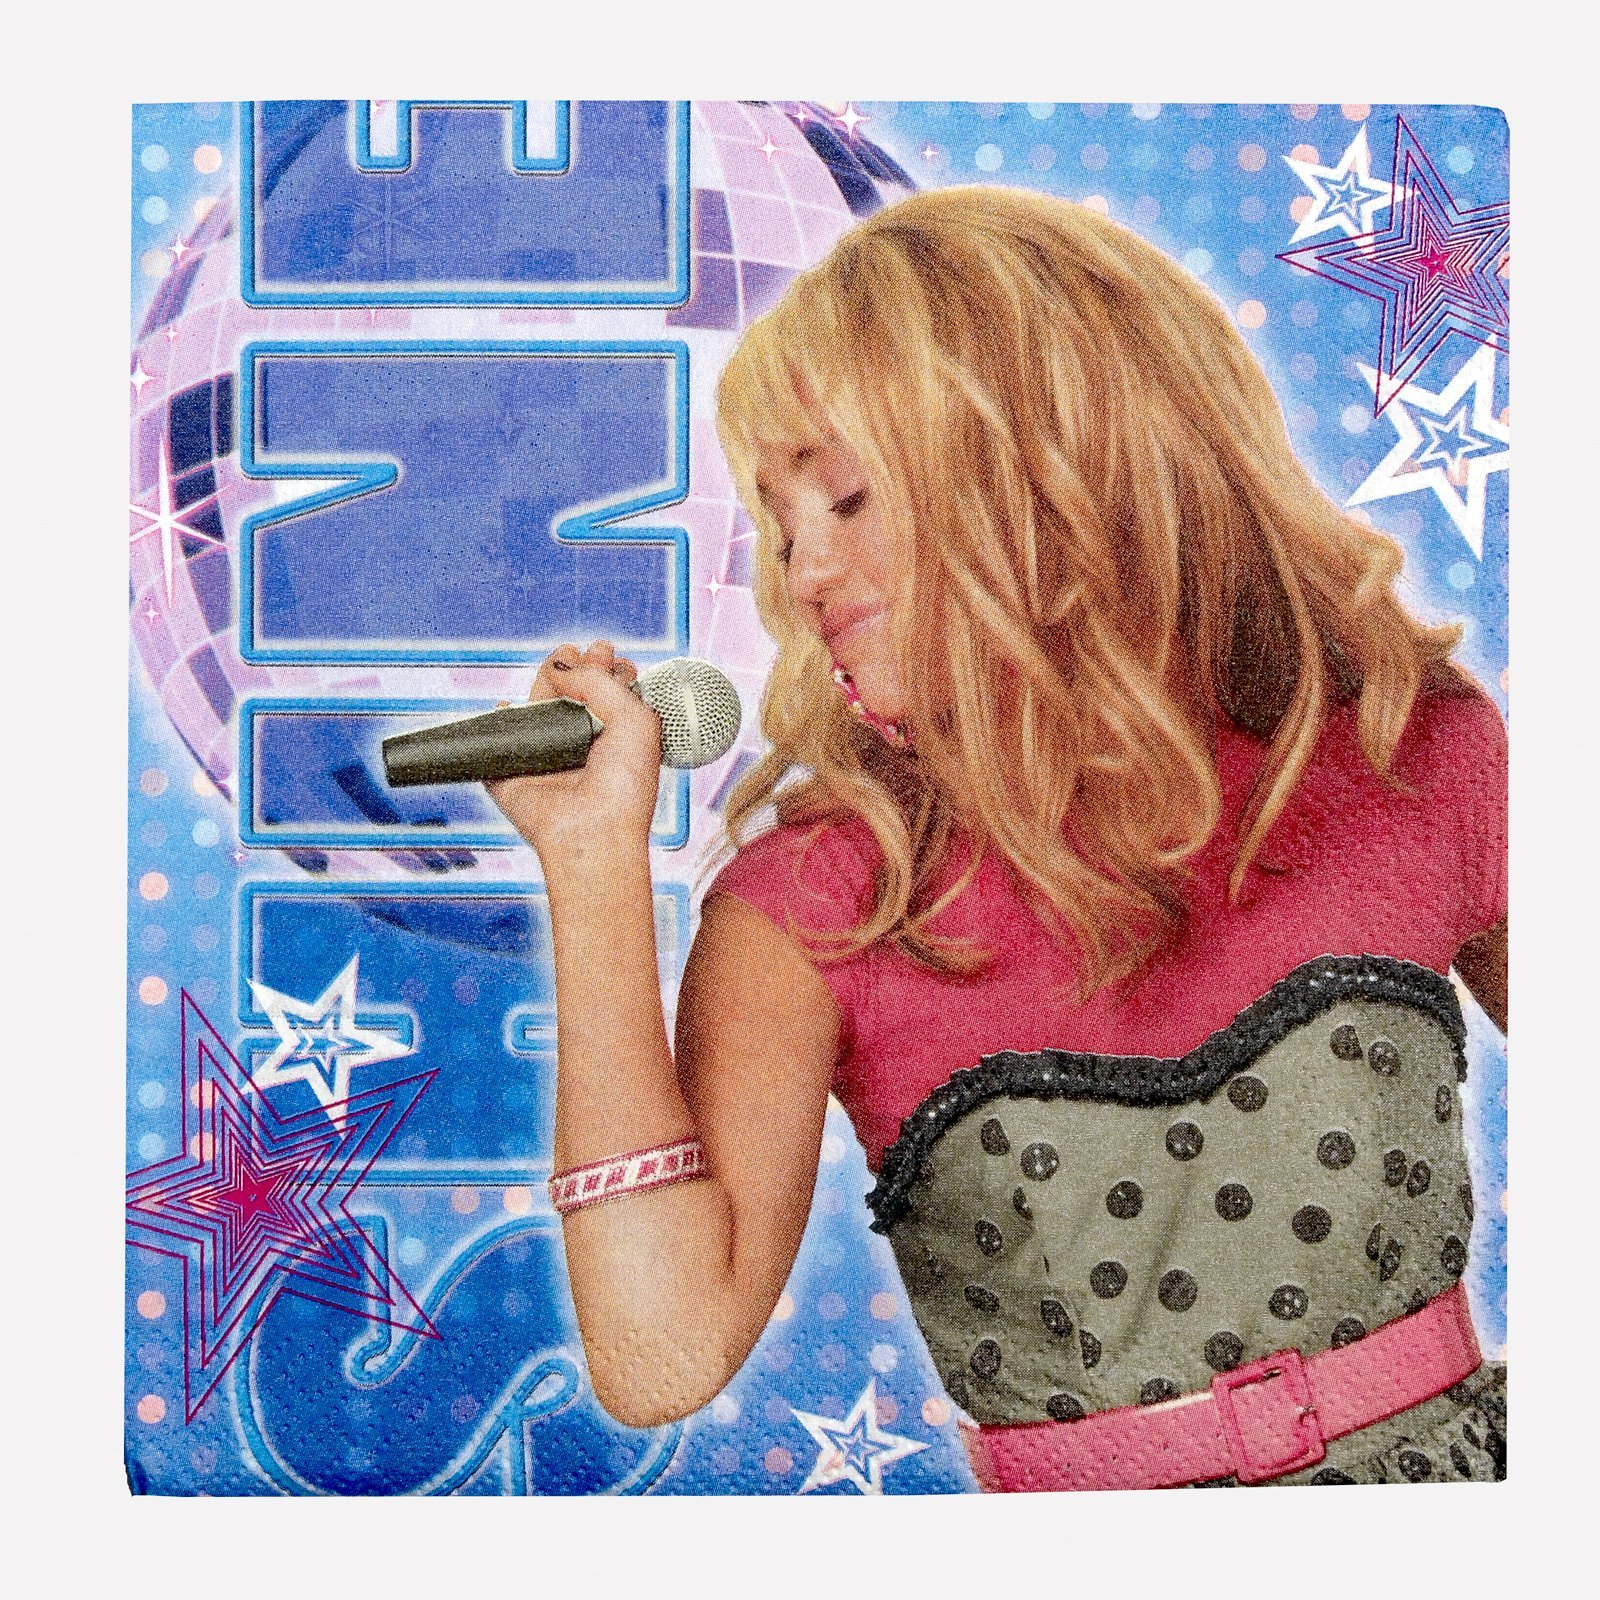 Hannah Montana - Rock the Stage Lunch Napkins (16 count)